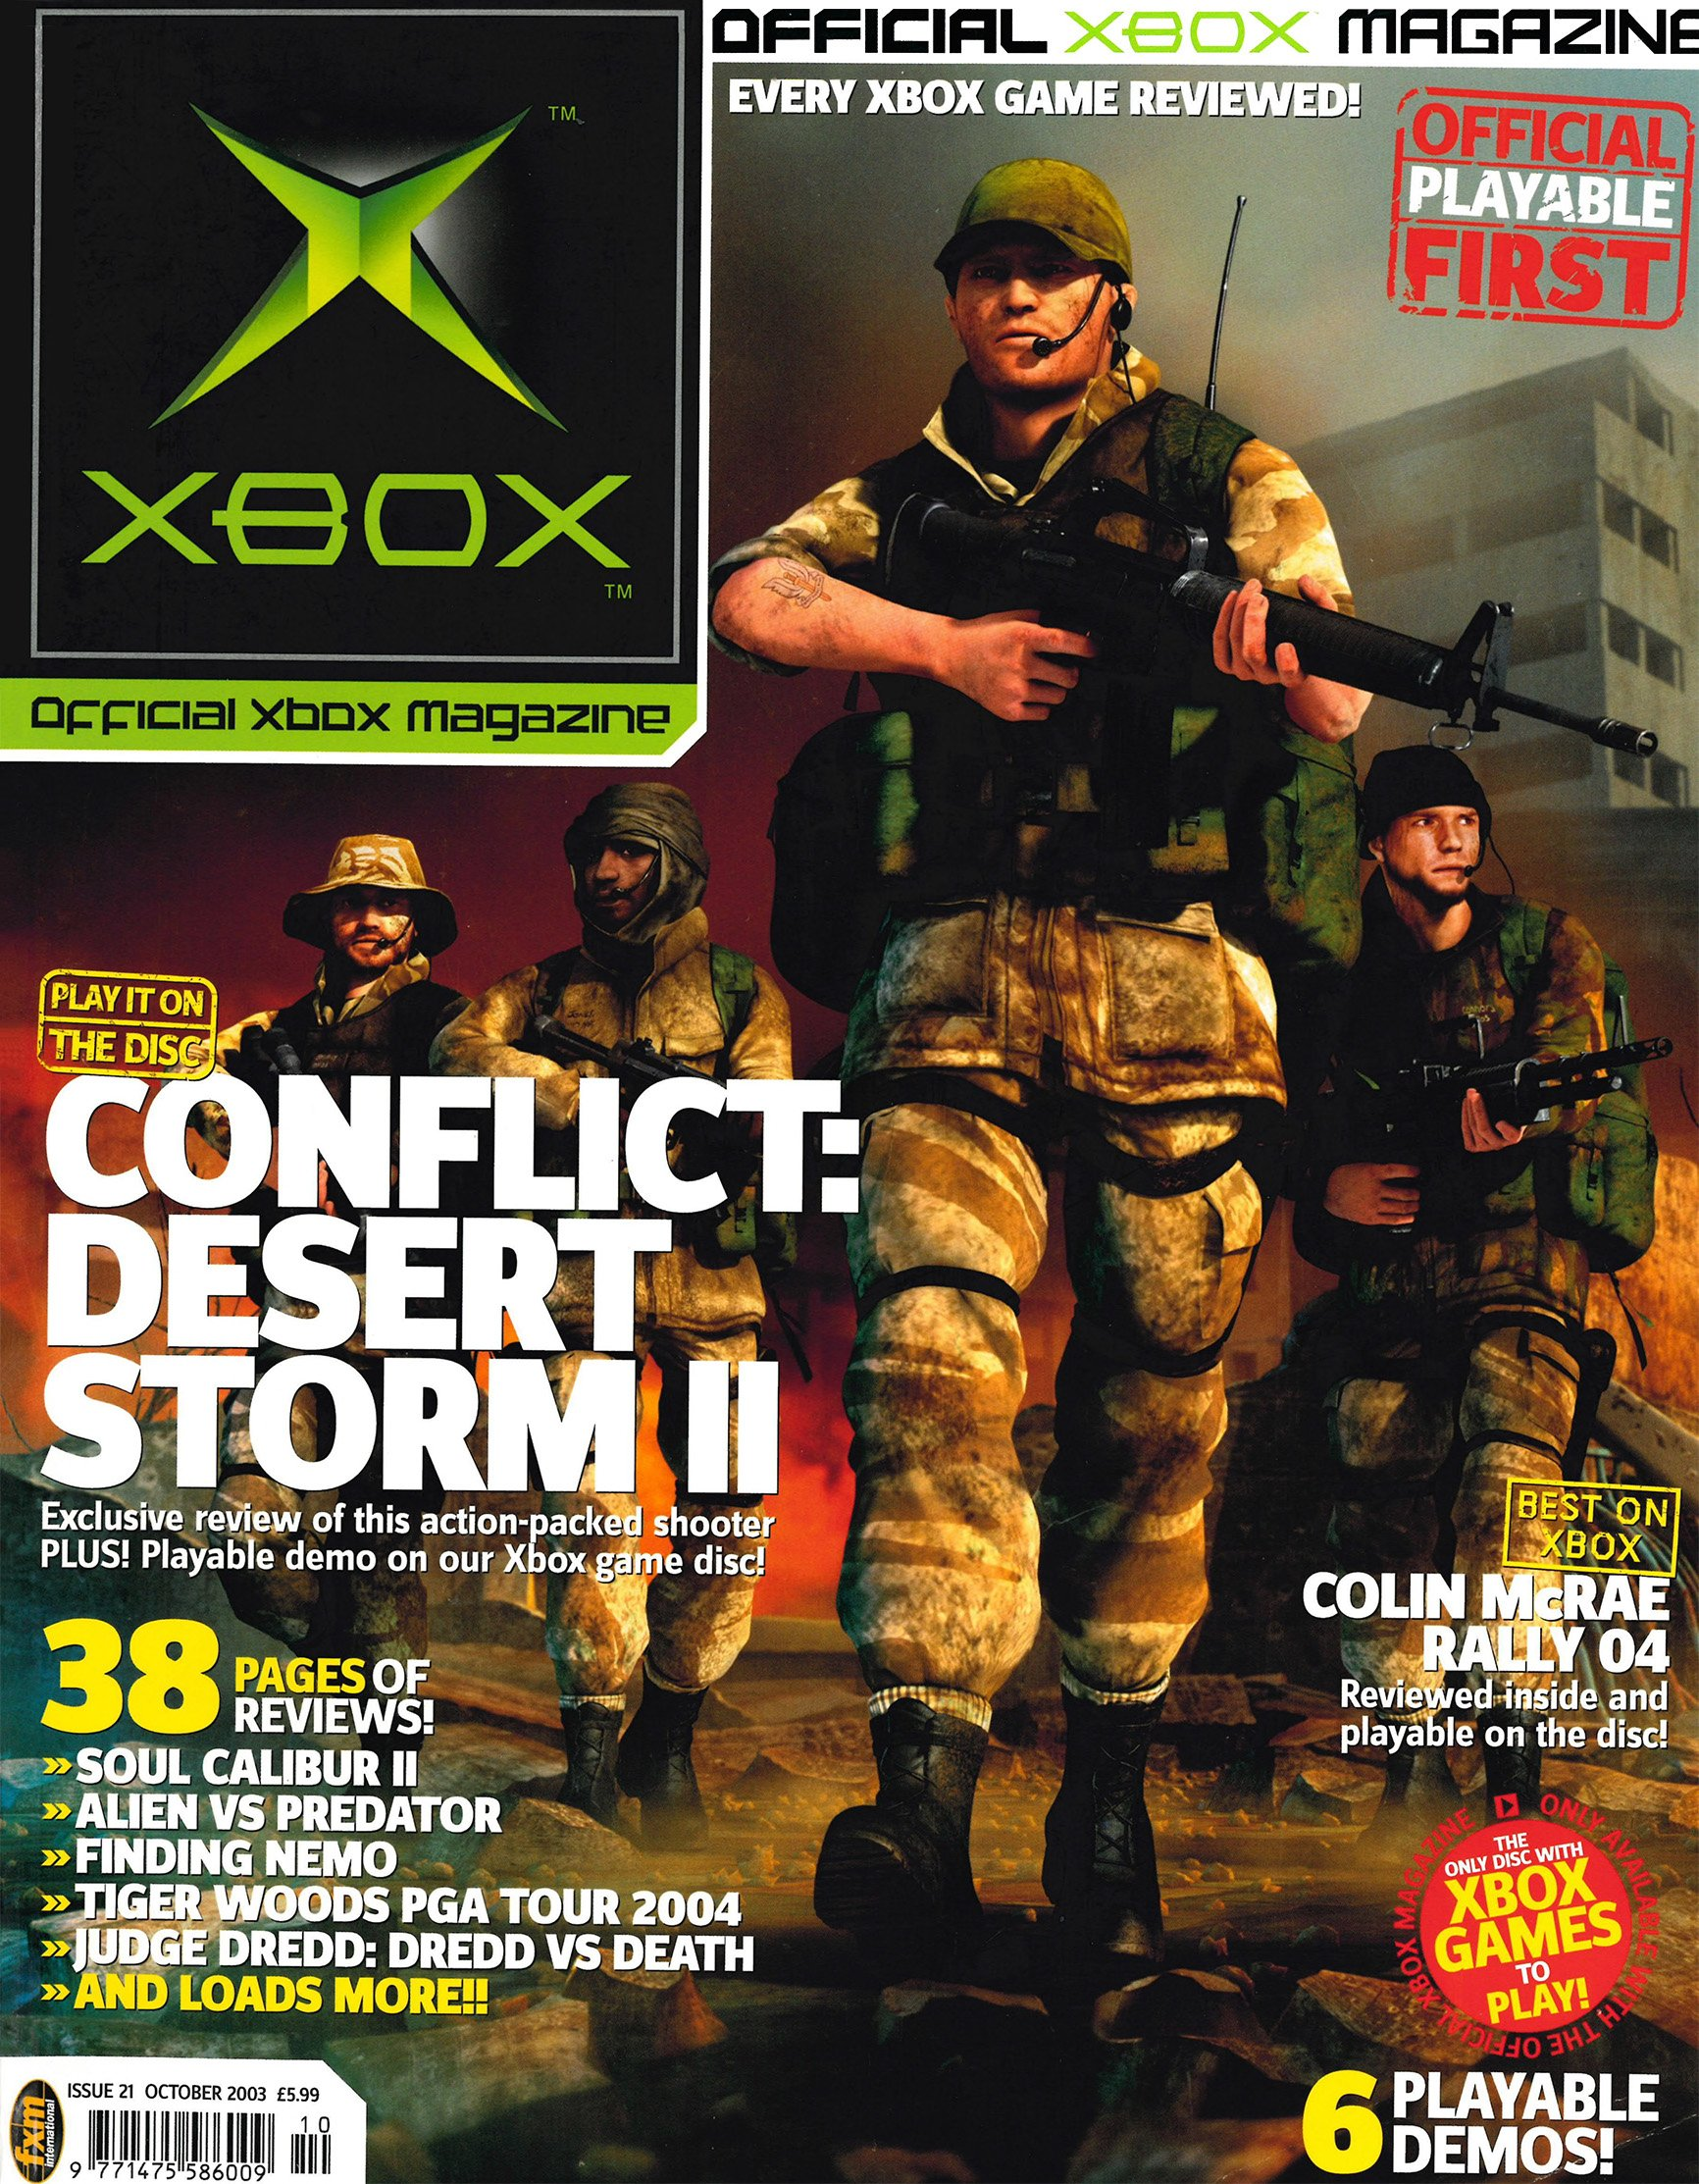 Official UK Xbox Magazine Issue 21 - October 2003